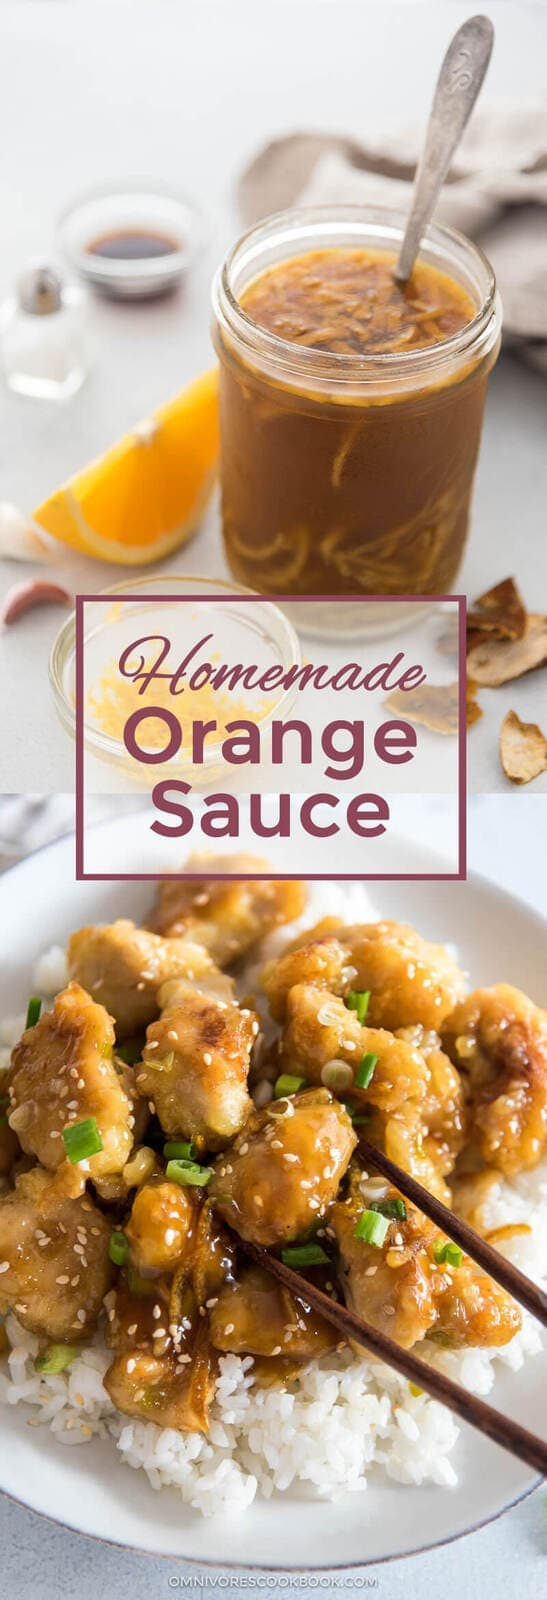 Not only you can use this orange sauce to make orange chicken or a quick stir fry, you can even make roasted vegetables with it! {gluten-free, vegan}